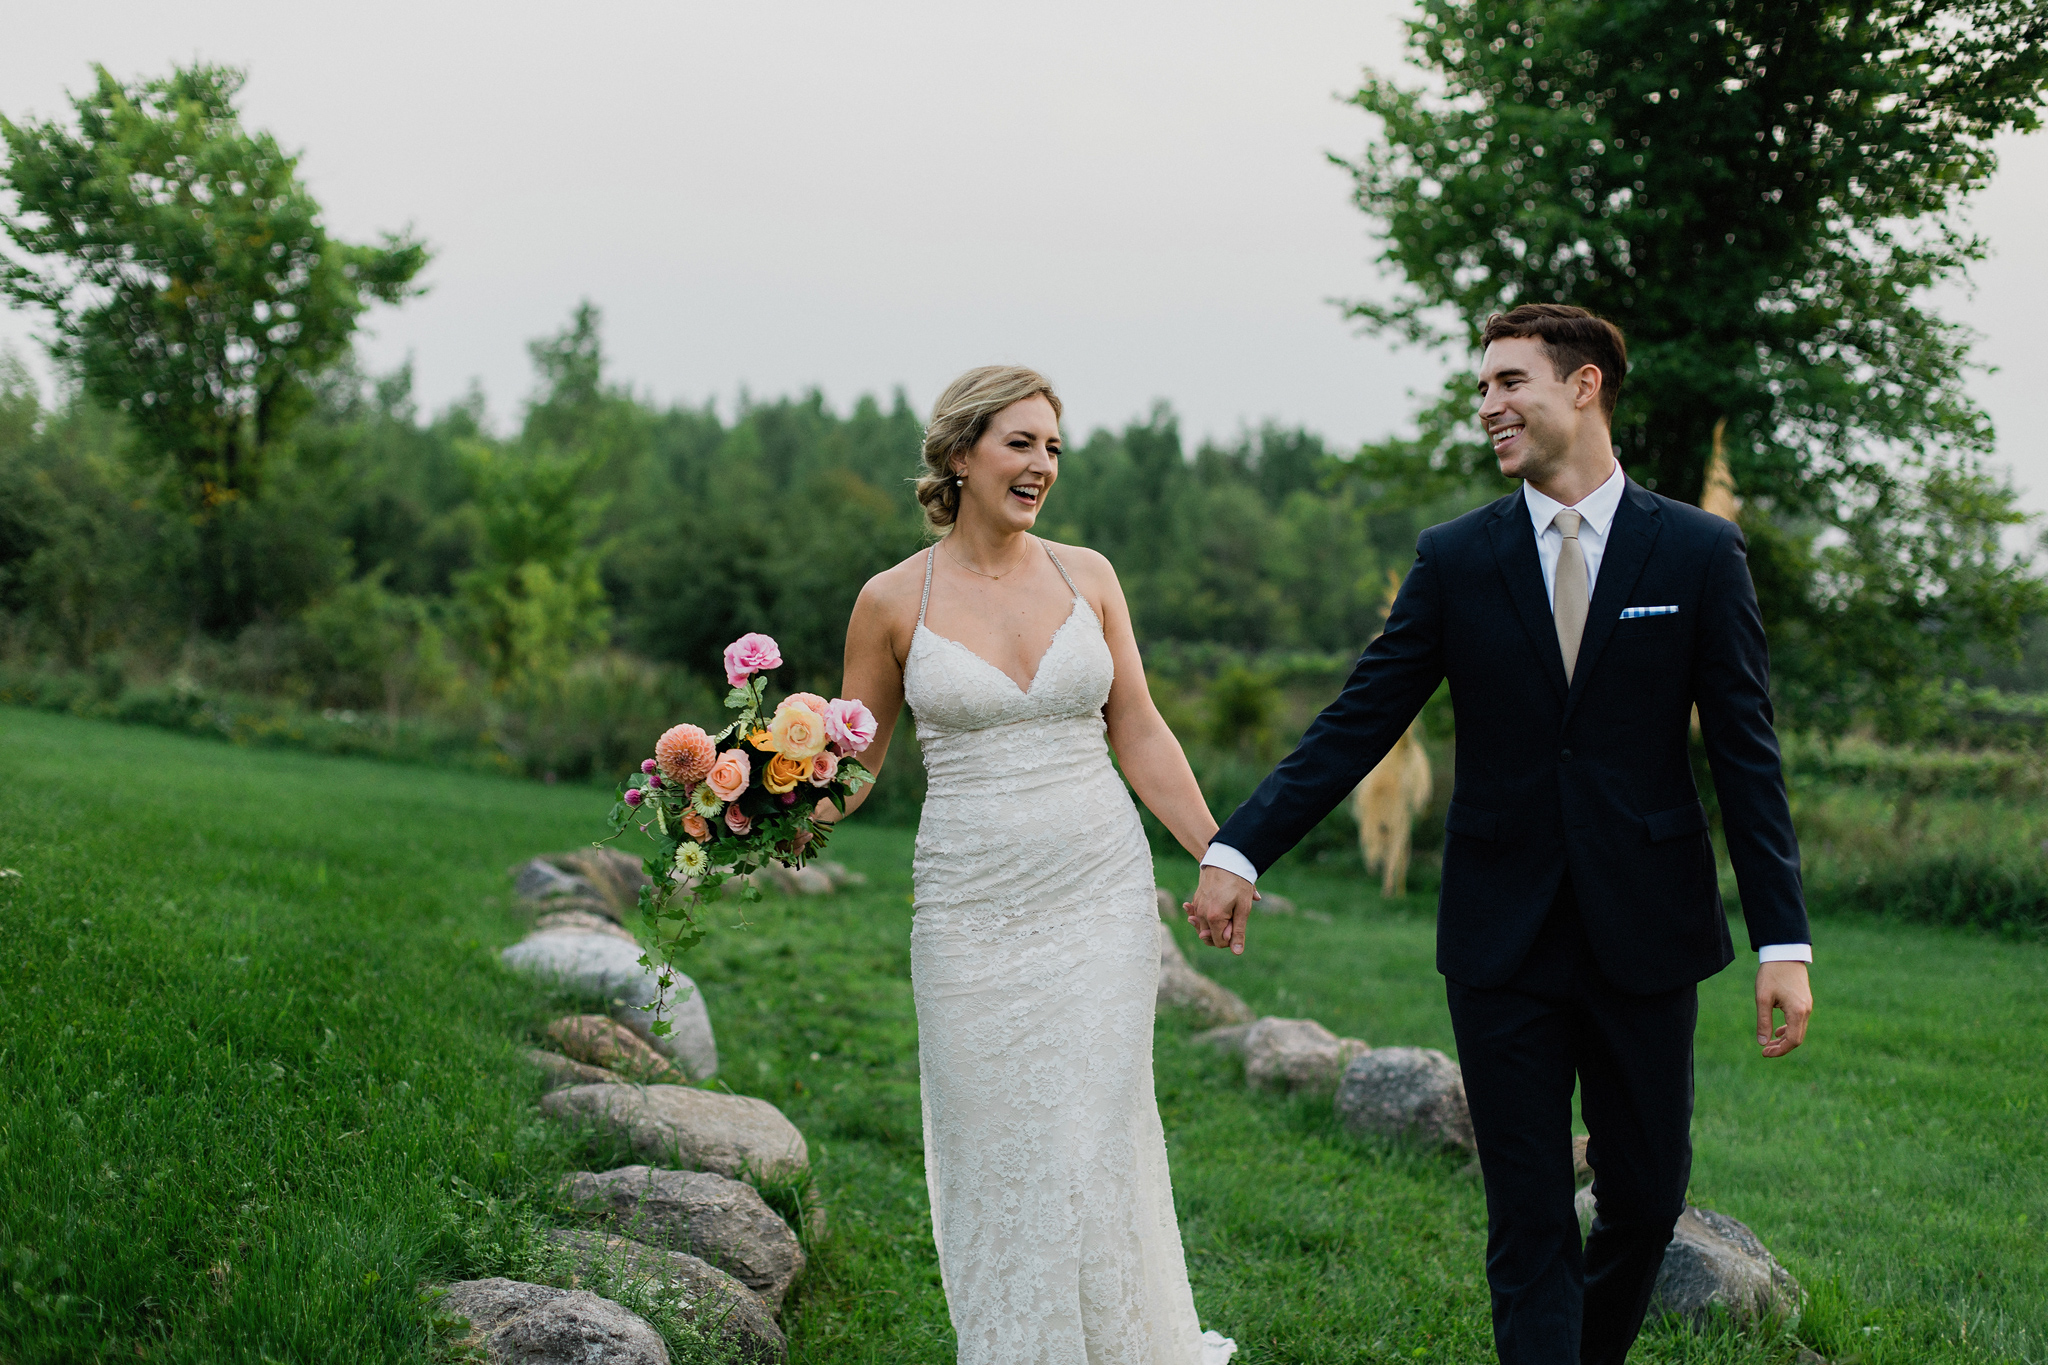 Bride and groom joyfully walk away from ceremony site at Coffin